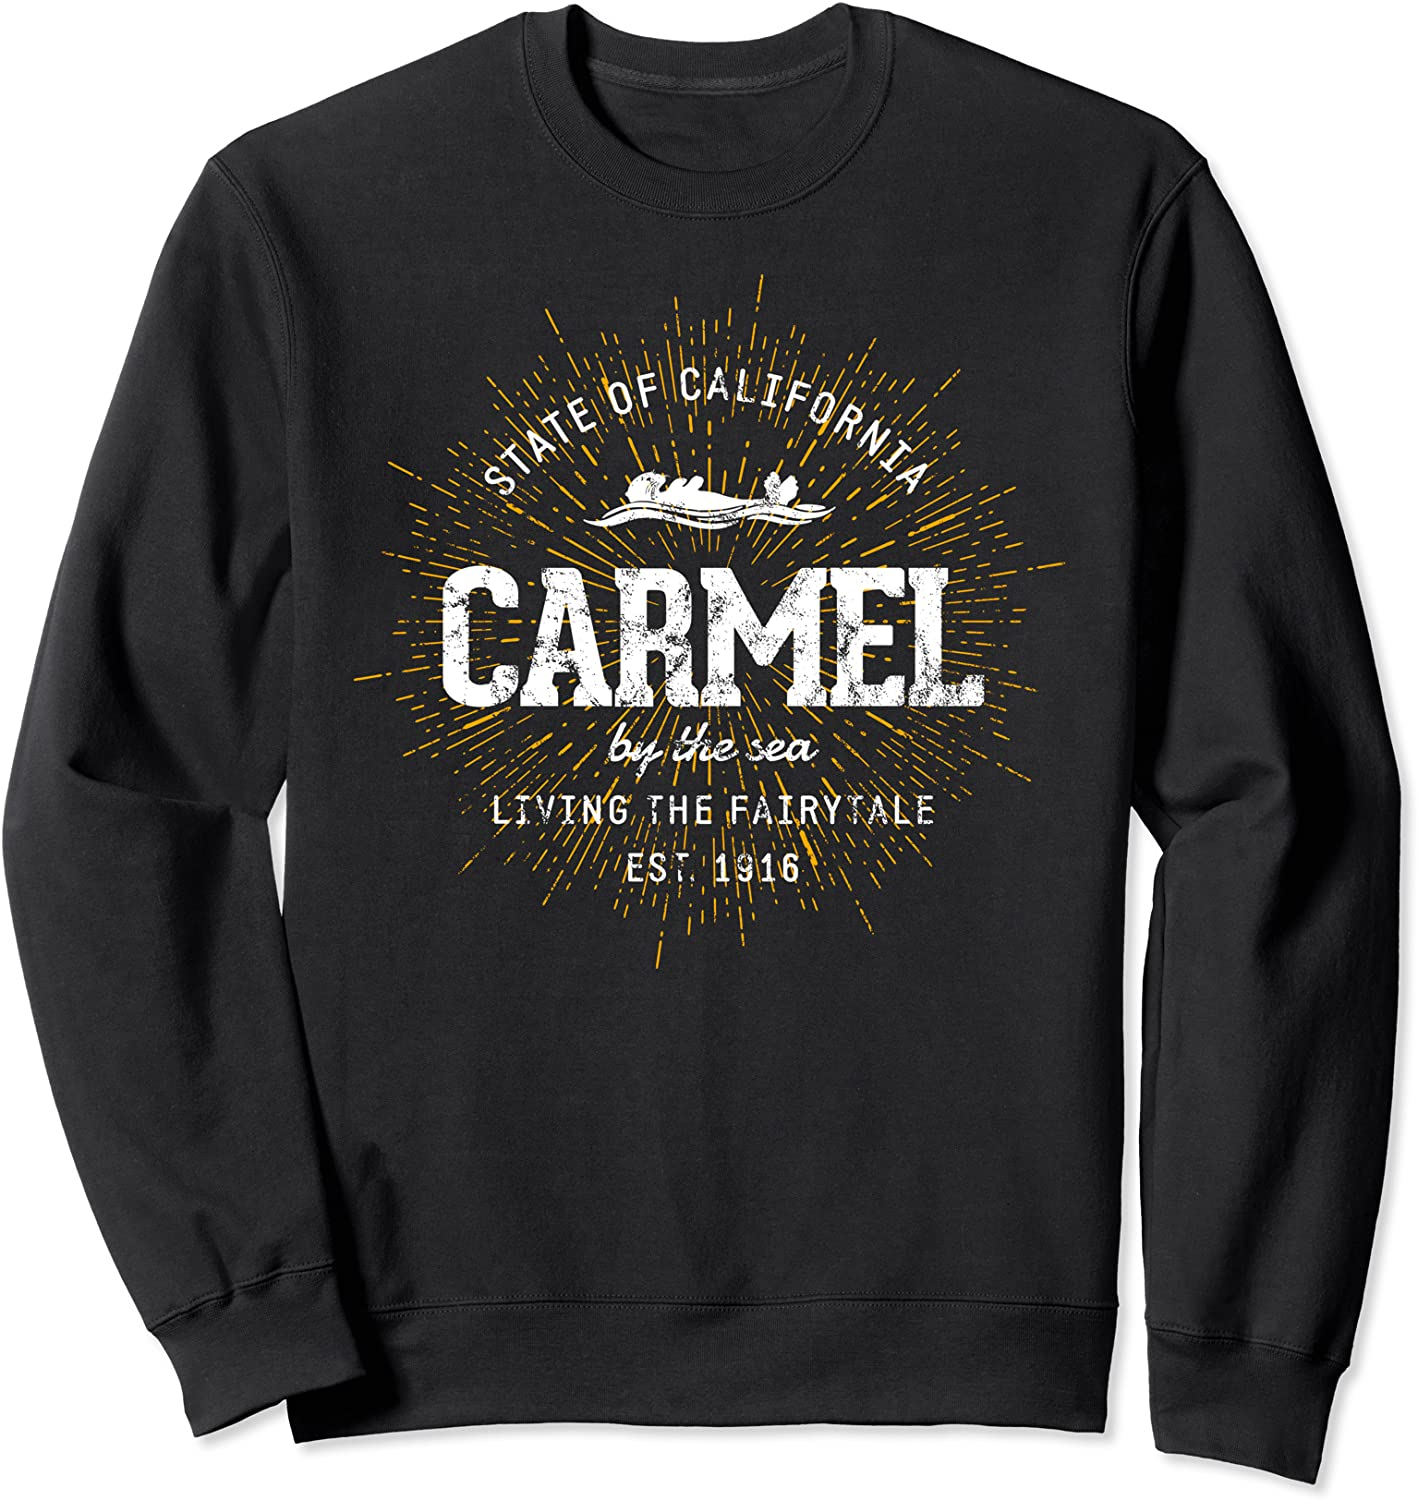 Retro Style Vintage Carmel by the Max 61% OFF Sea Manufacturer direct delivery Sweatshirt